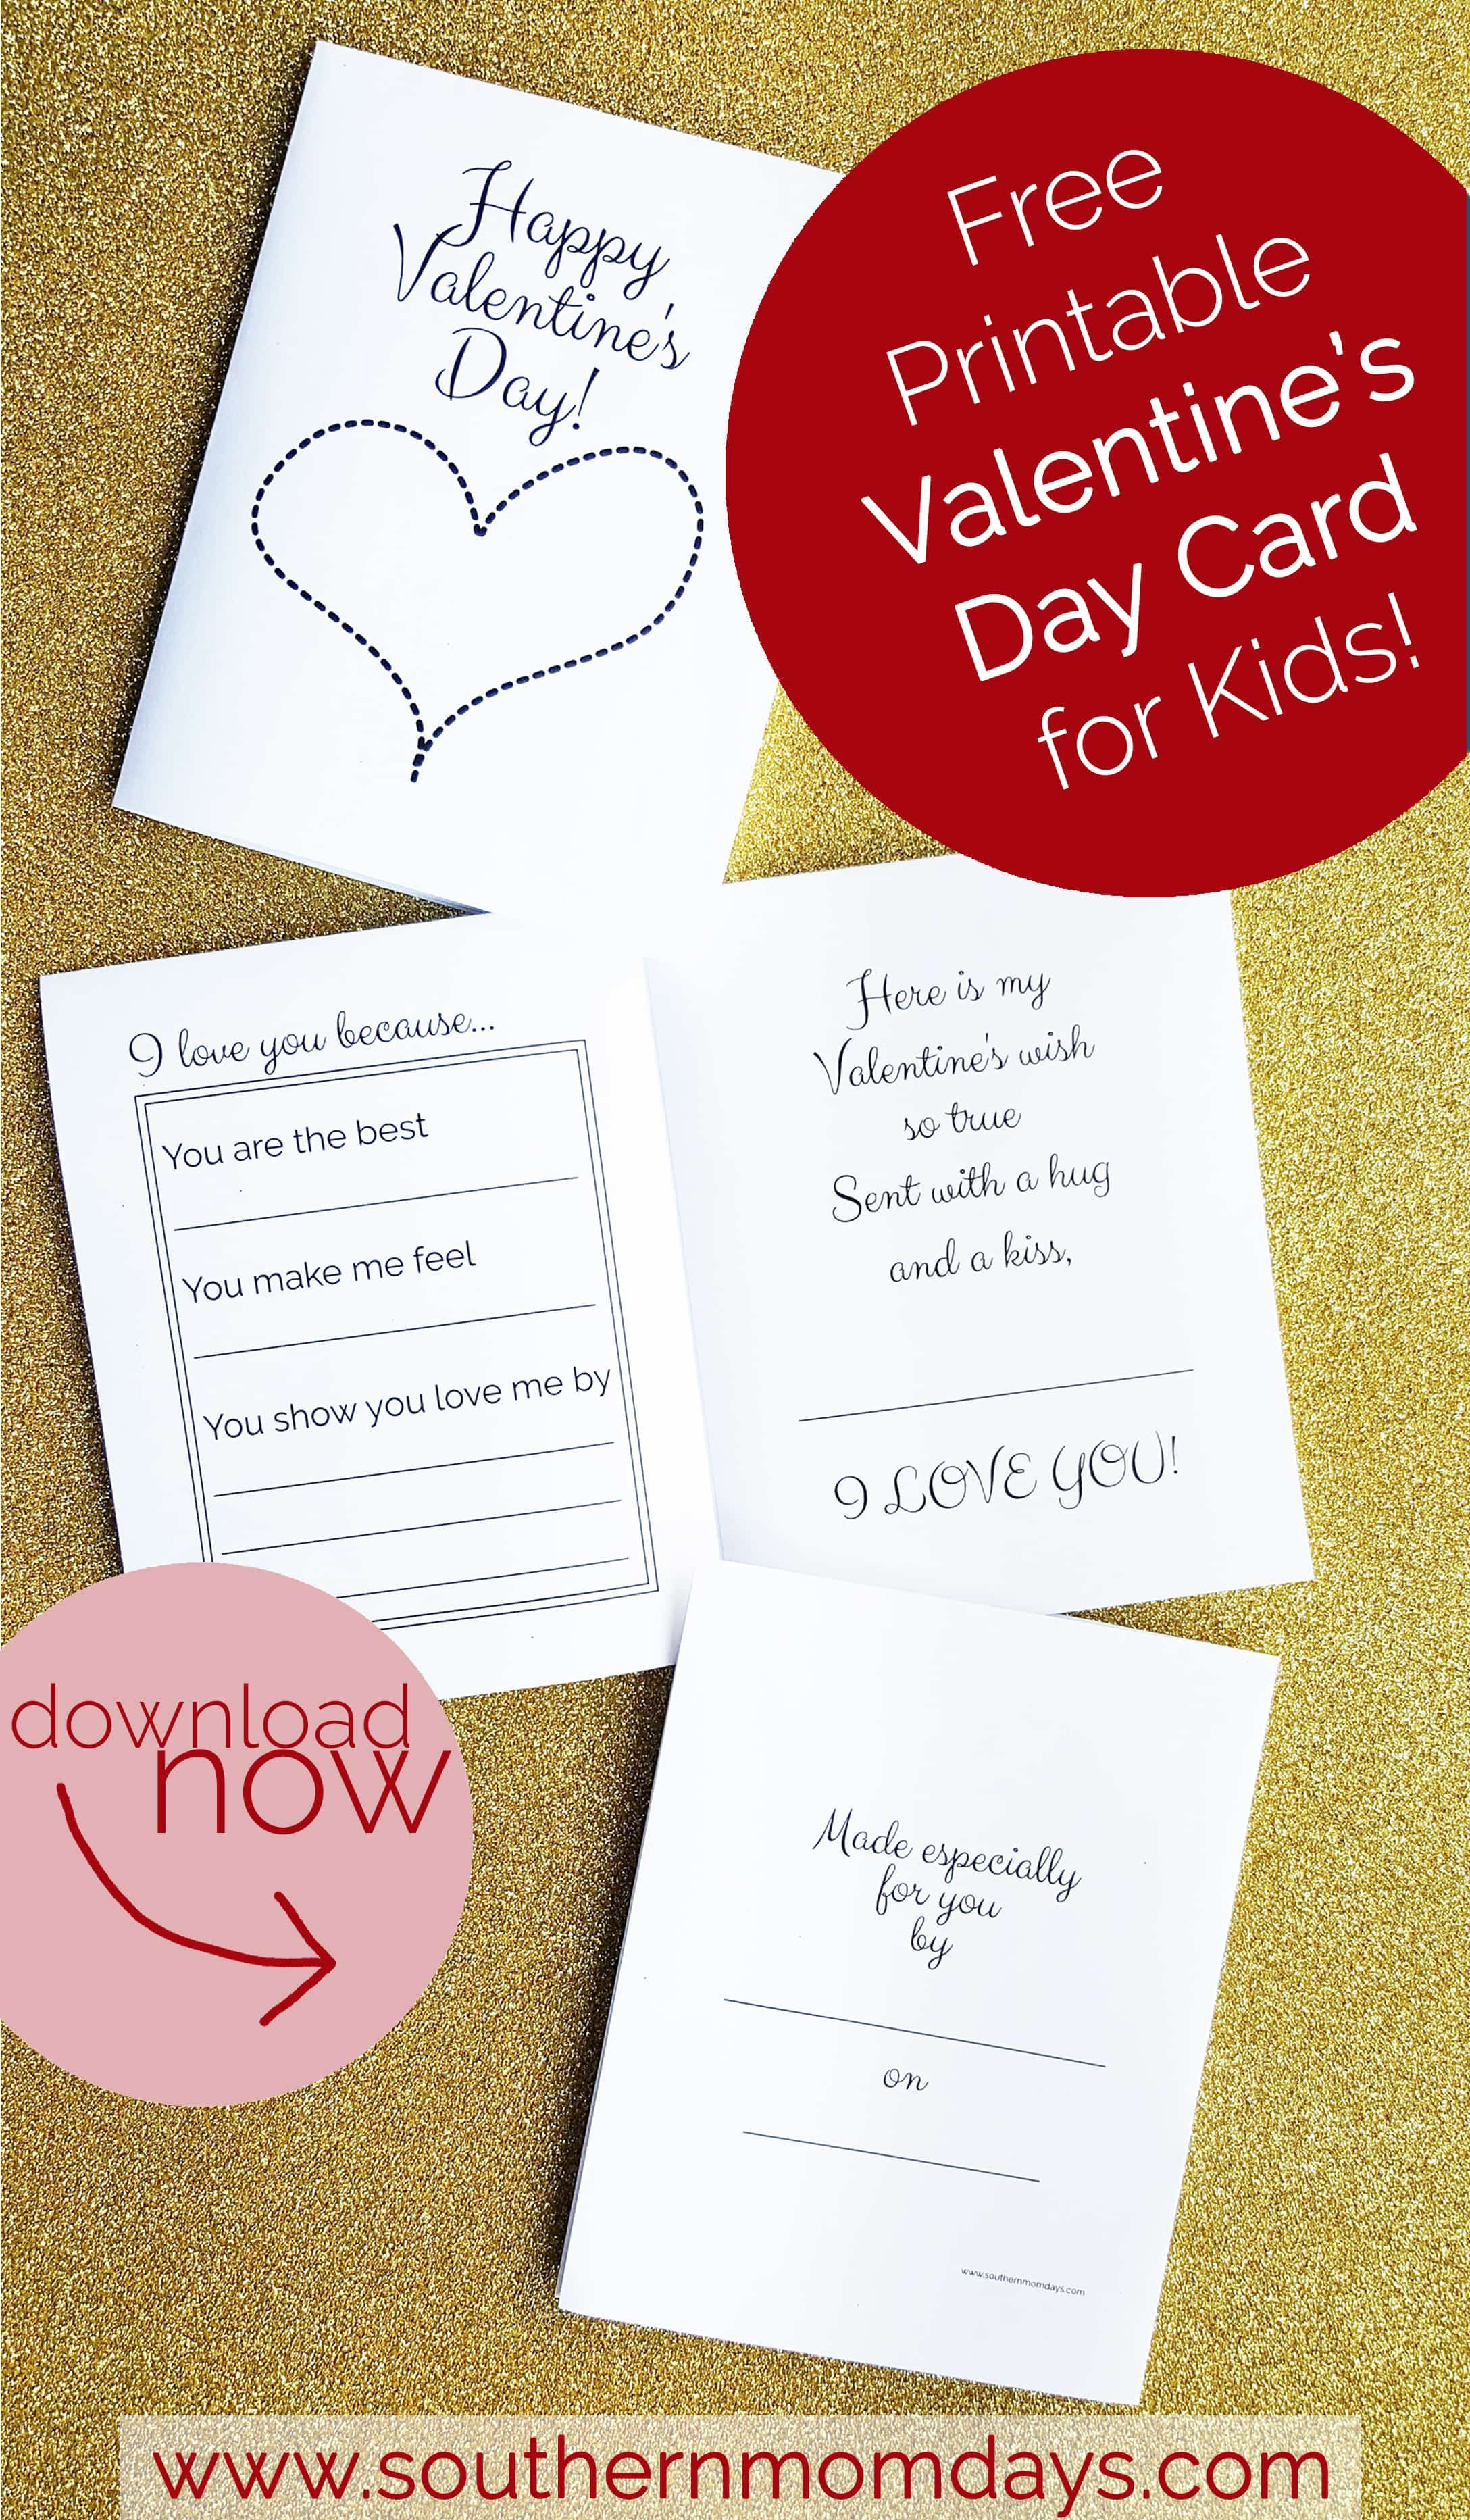 Free Printable: Valentine's Day Card For Kids | Moms Helping Moms - Free Printable Valentines Day Cards For Mom And Dad